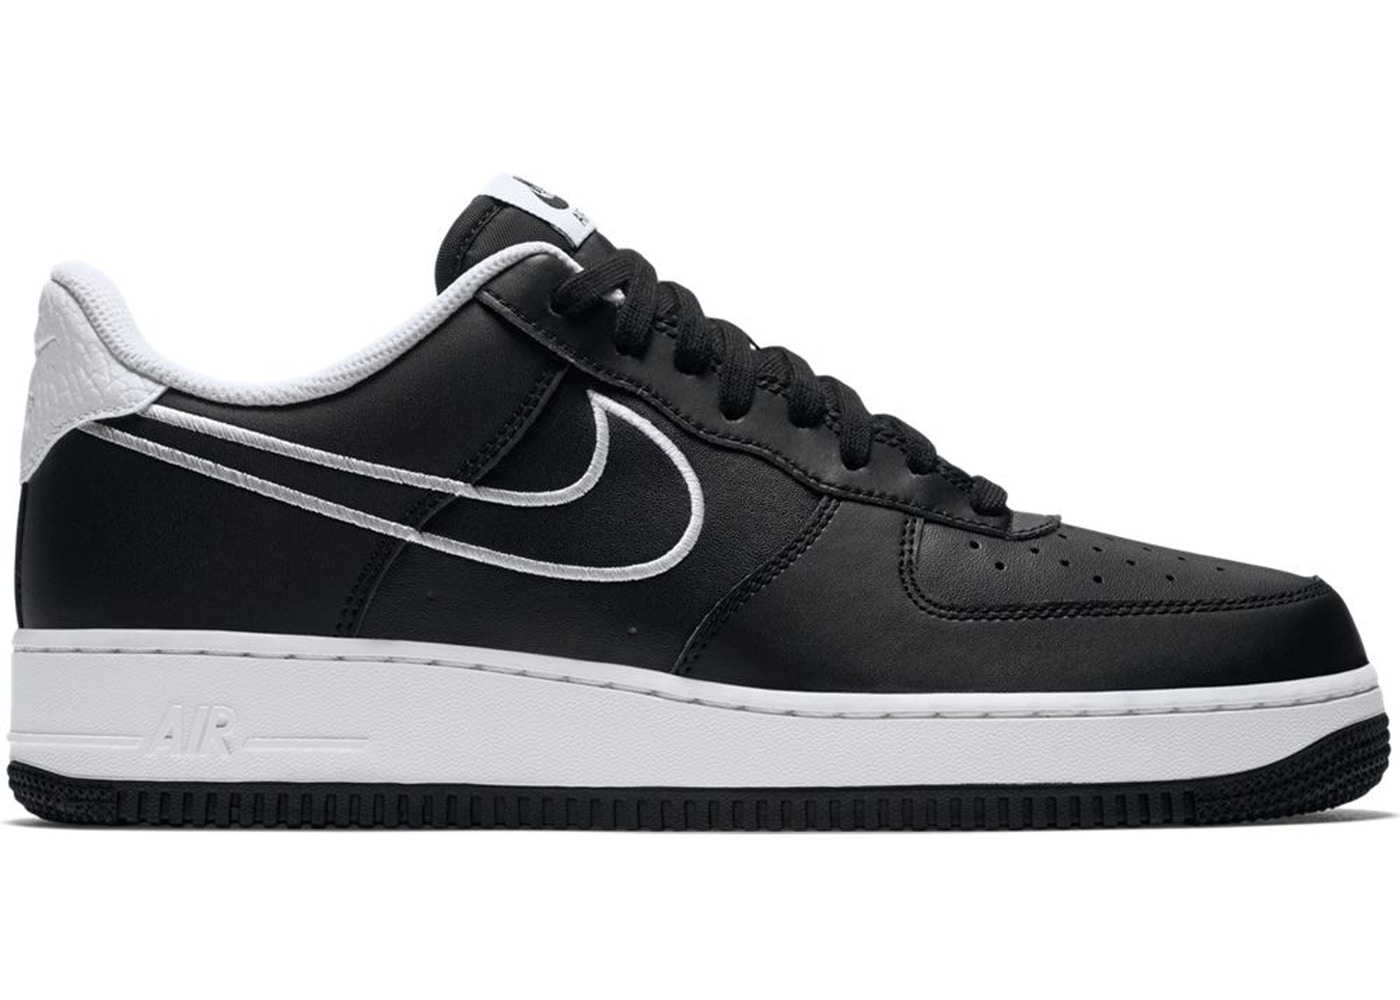 30653b6e Sell. or Ask. Size 8. View All Bids. Air Force 1 Low Leather ...